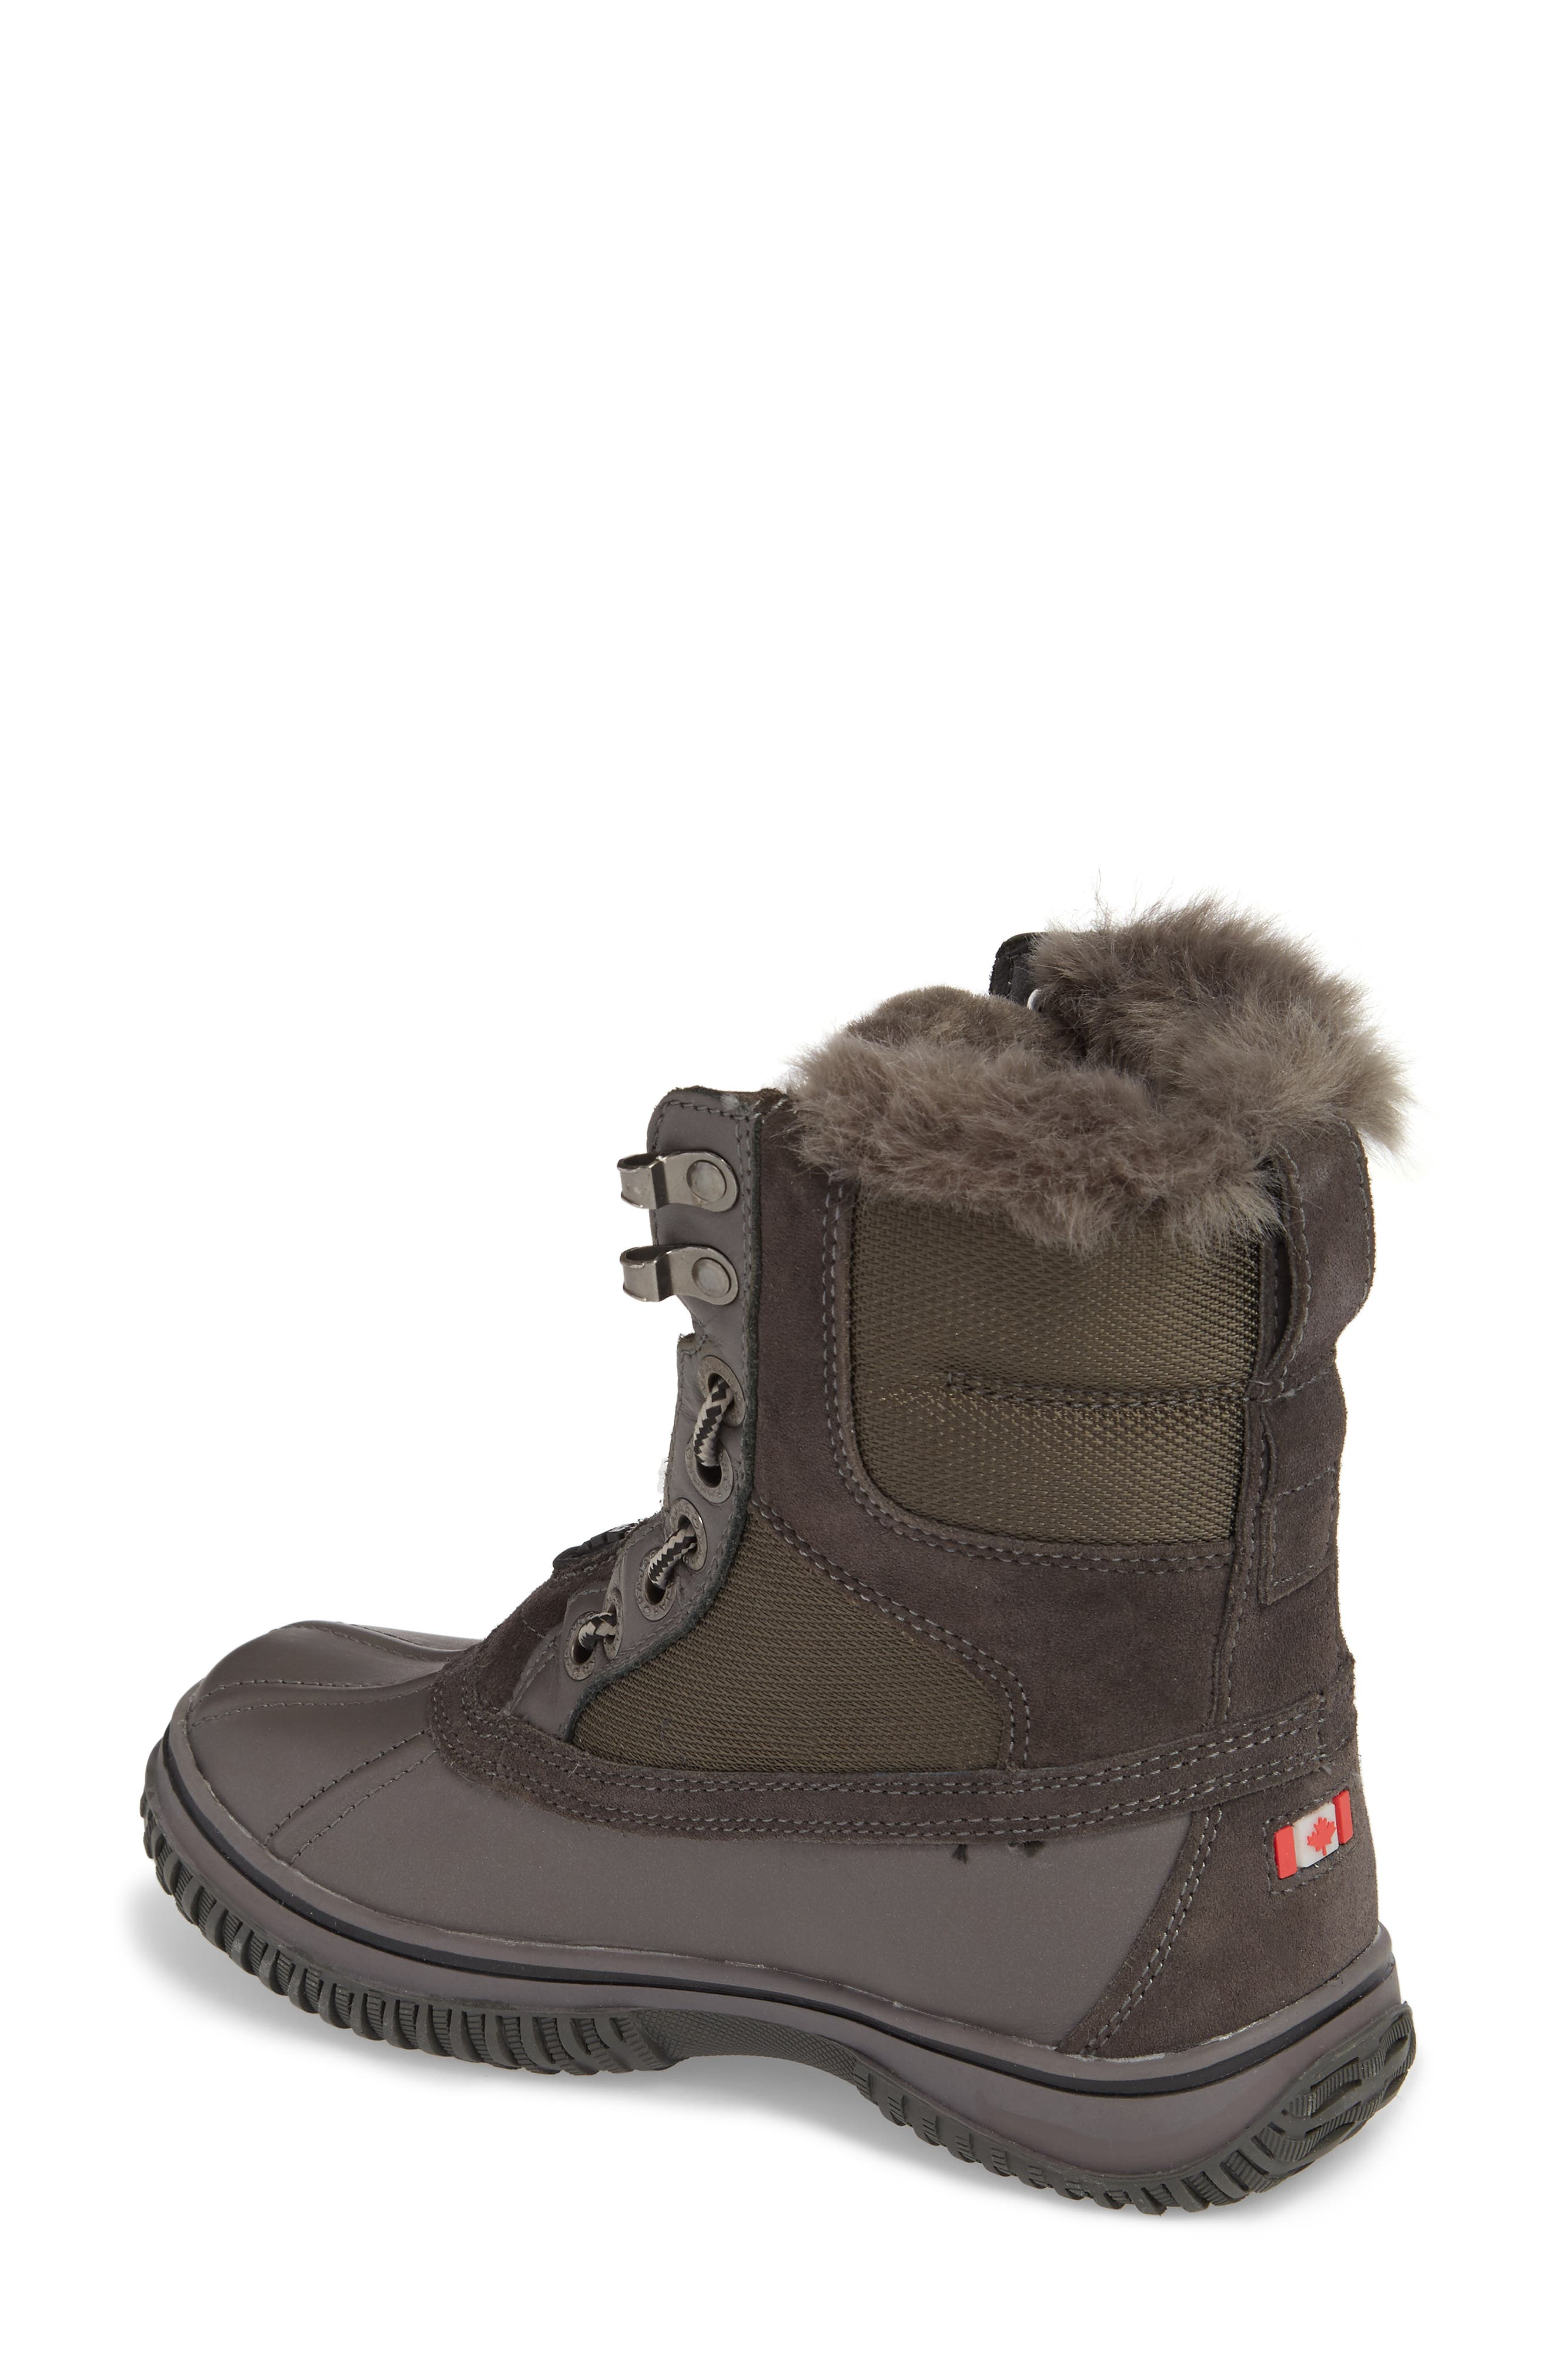 Gayanna Waterproof Winter Boot,                             Alternate thumbnail 2, color,                             Pewter Leather